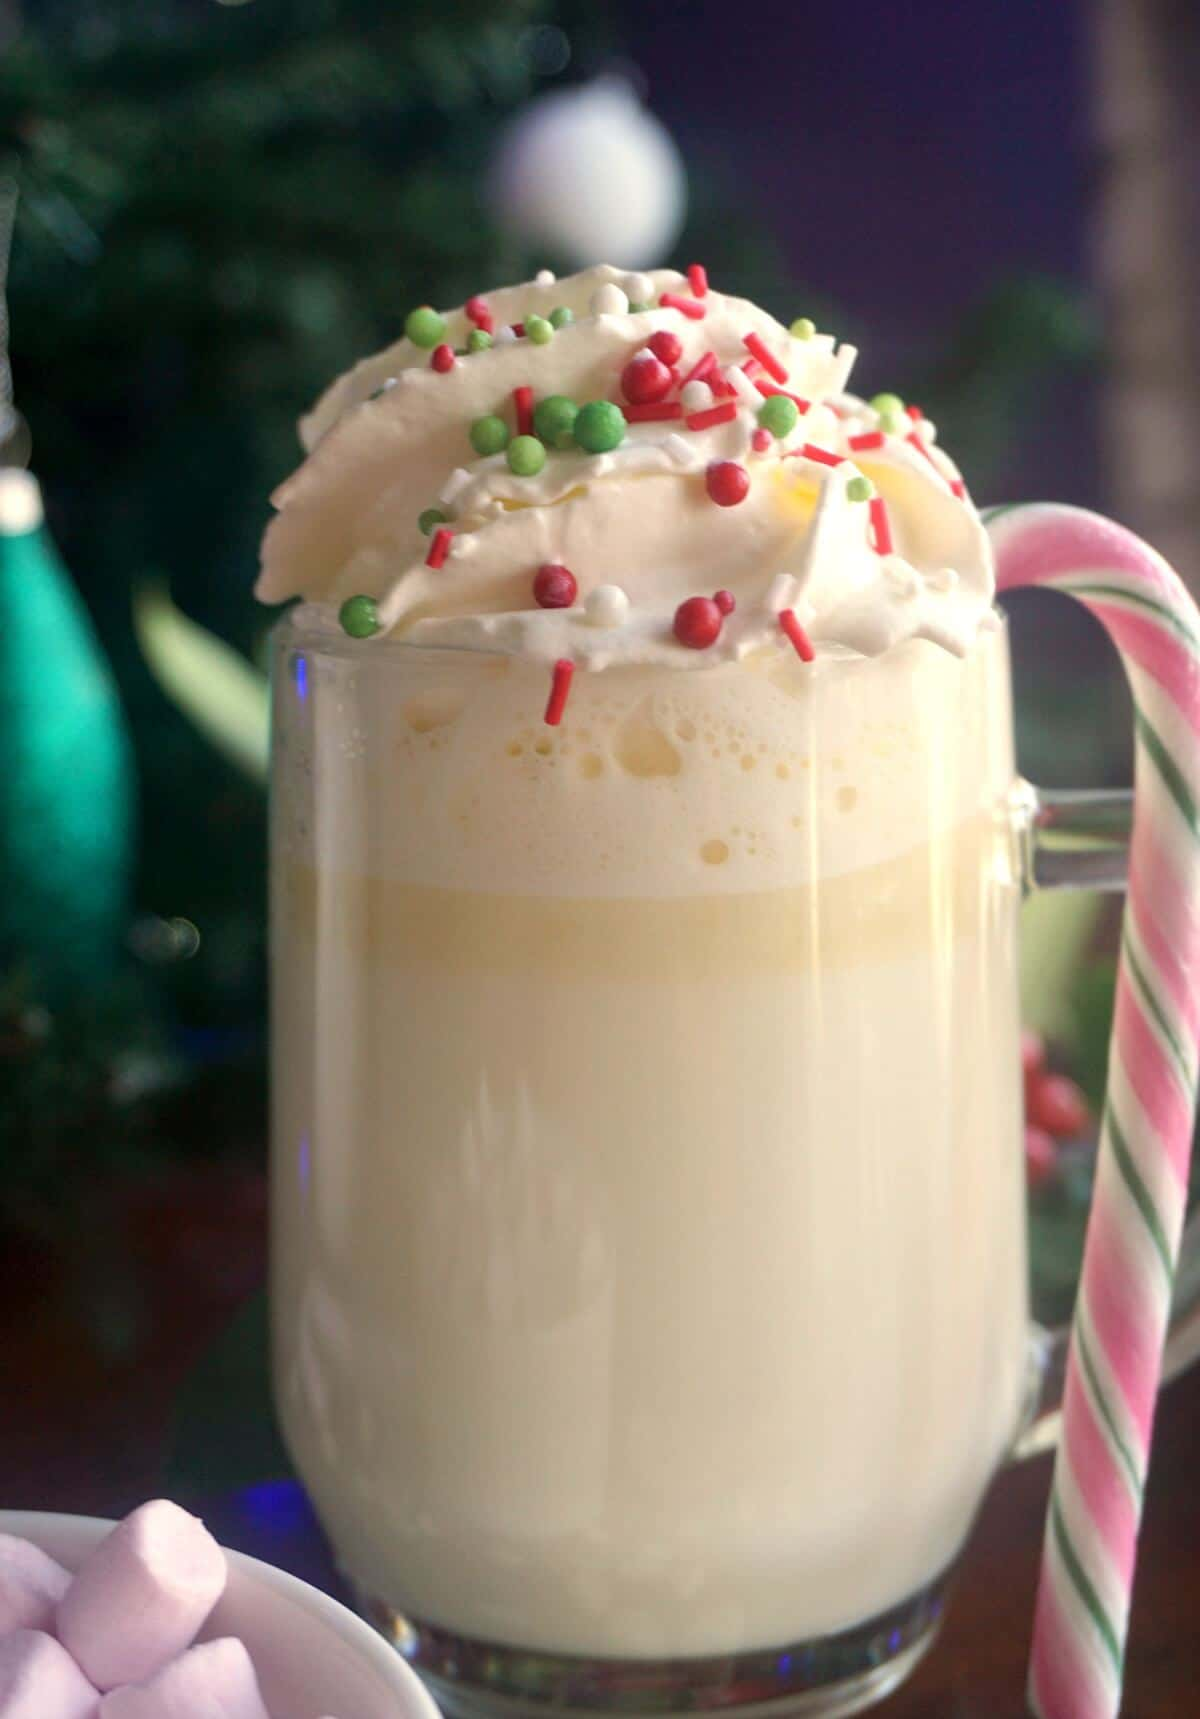 A glass of white hot chocolate with cream and sprinkles and a candy cane